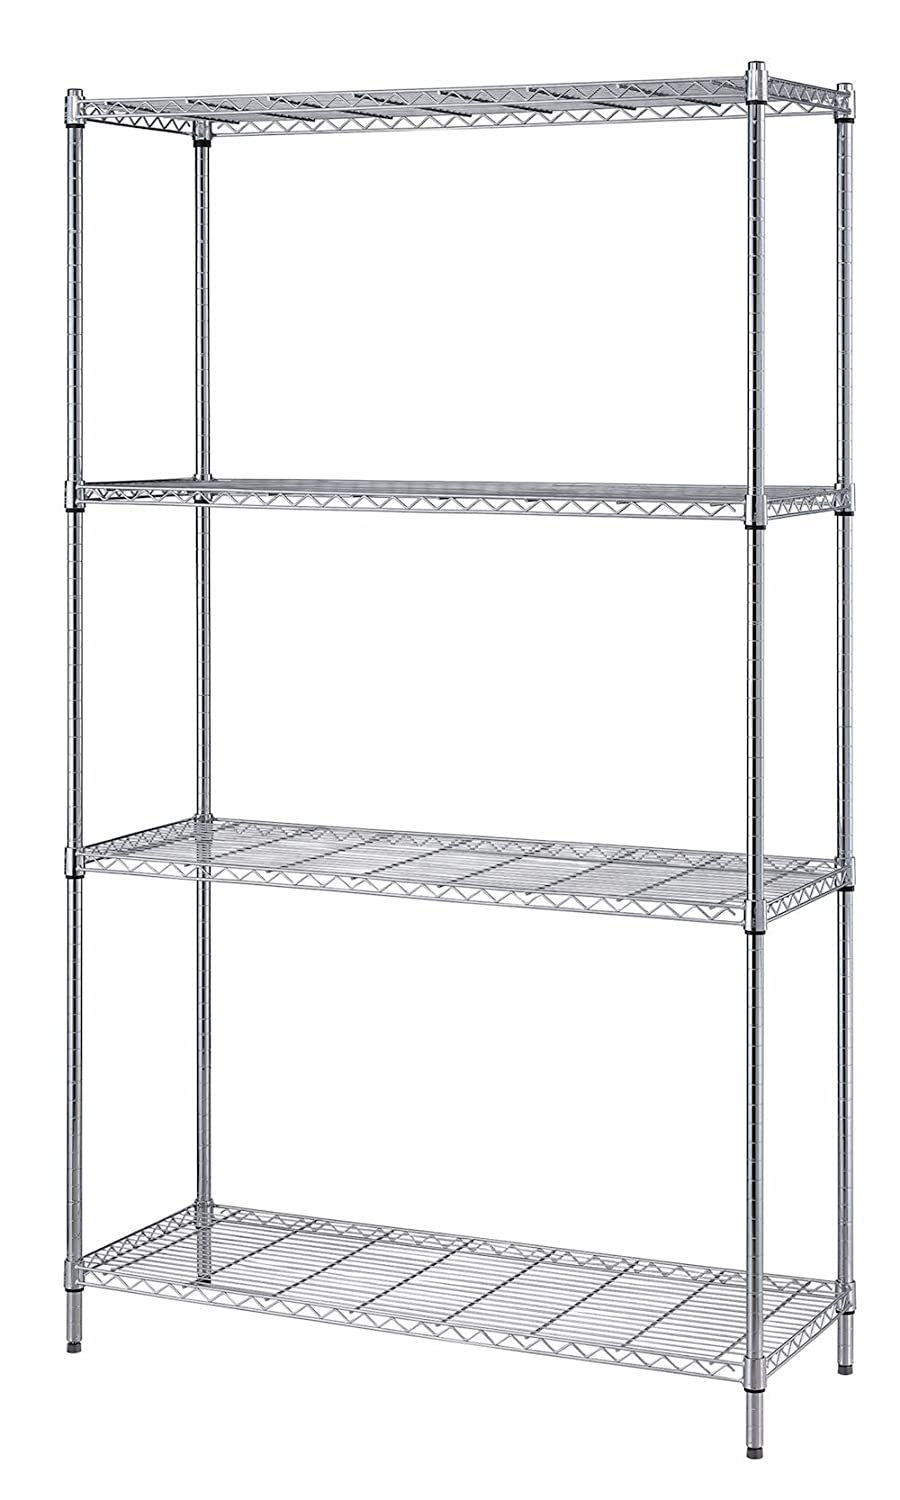 Amazon.com: Quantum Storage Systems RWR72-1830LD 4-Tier Wire ...